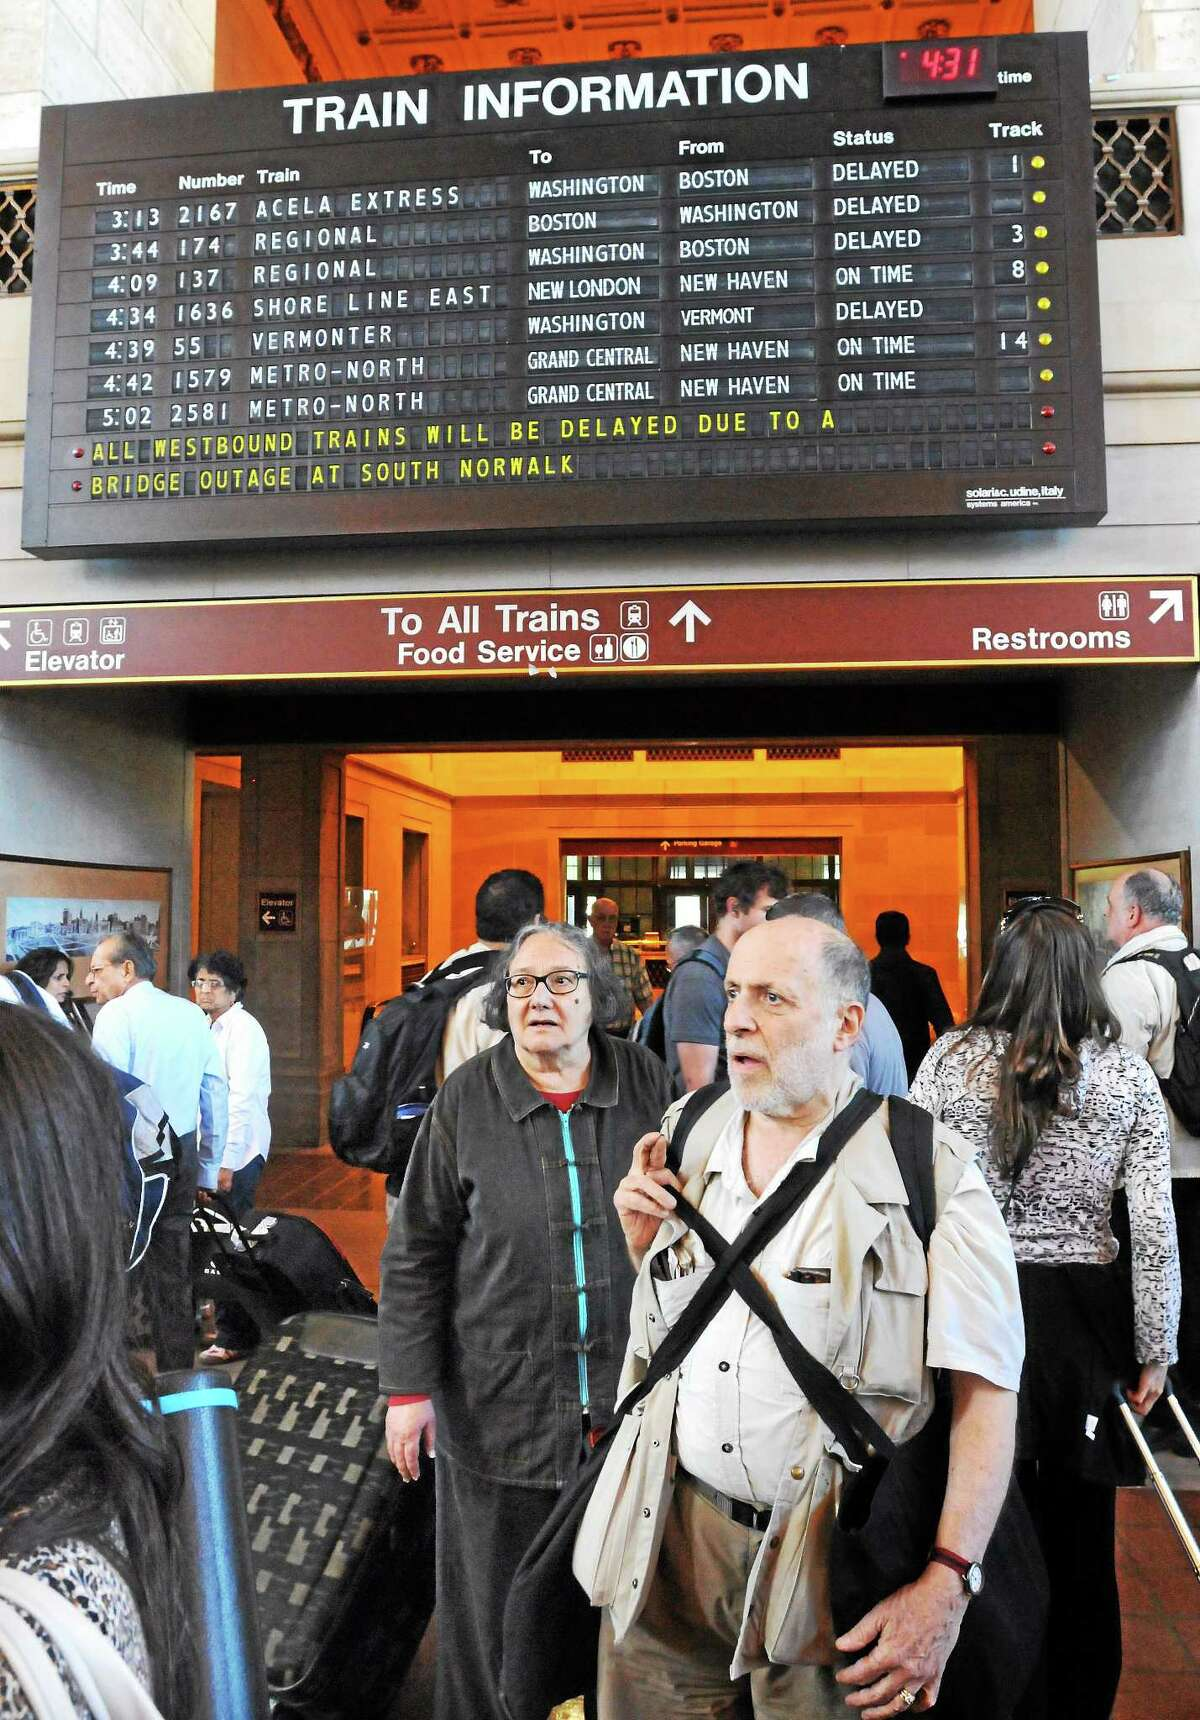 Train riders poured into New Haven's Union Station because of delays due to the Walk Bridge in Norwalk being stuck.